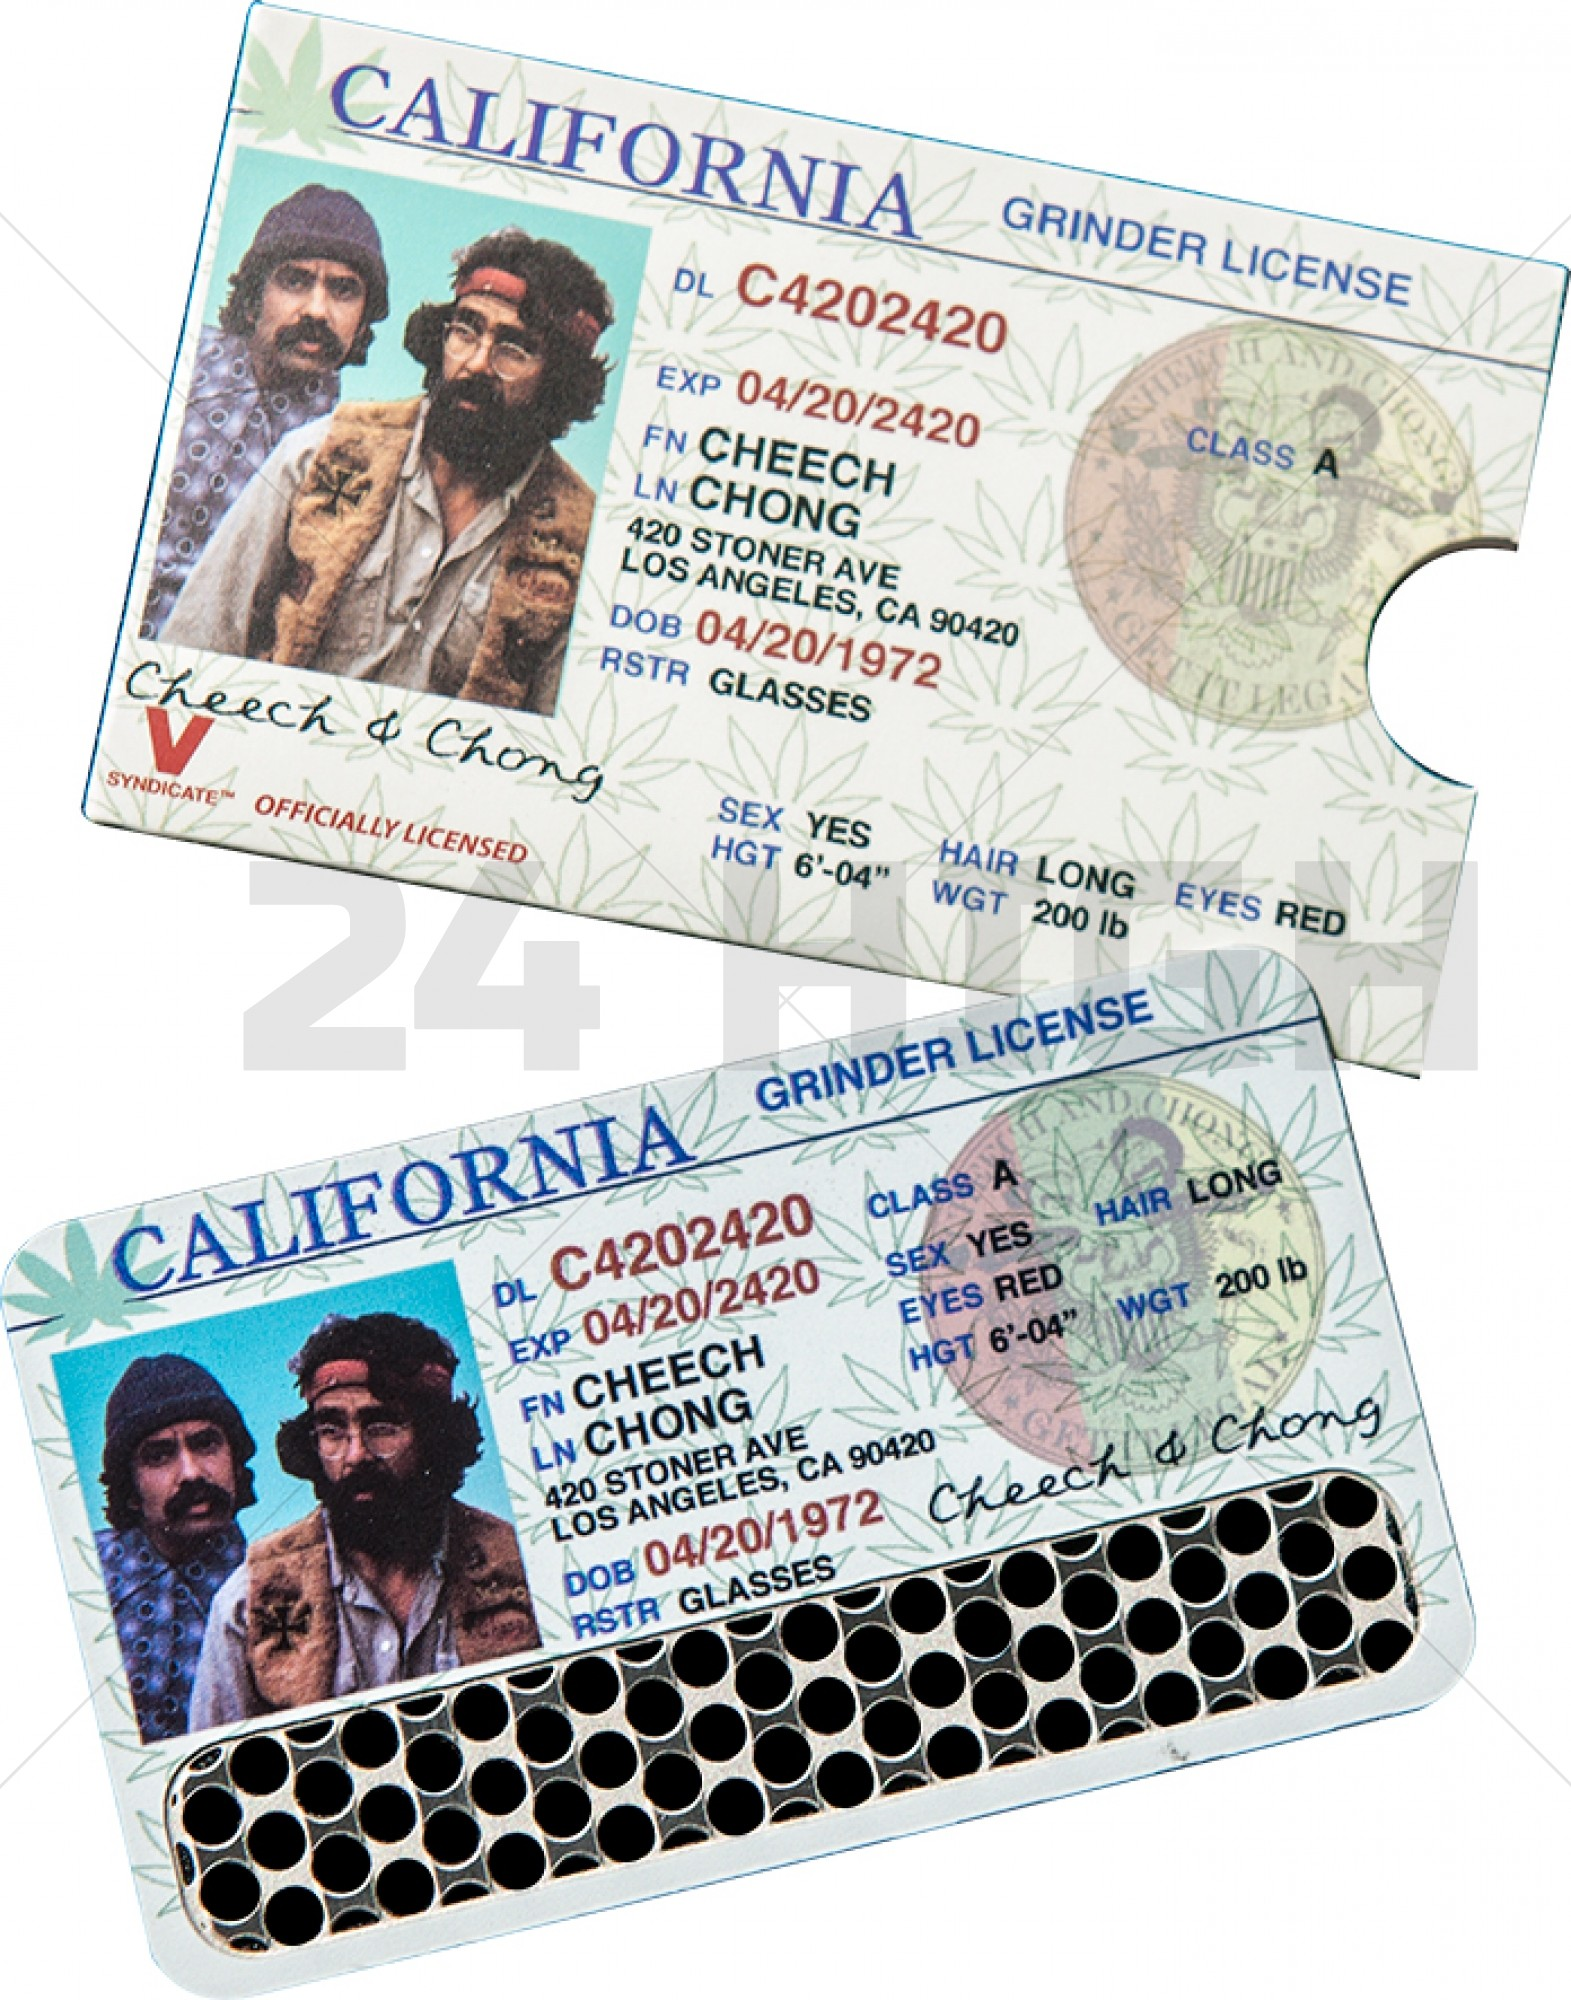 Credit Card Grinder, Cheech and Chong License